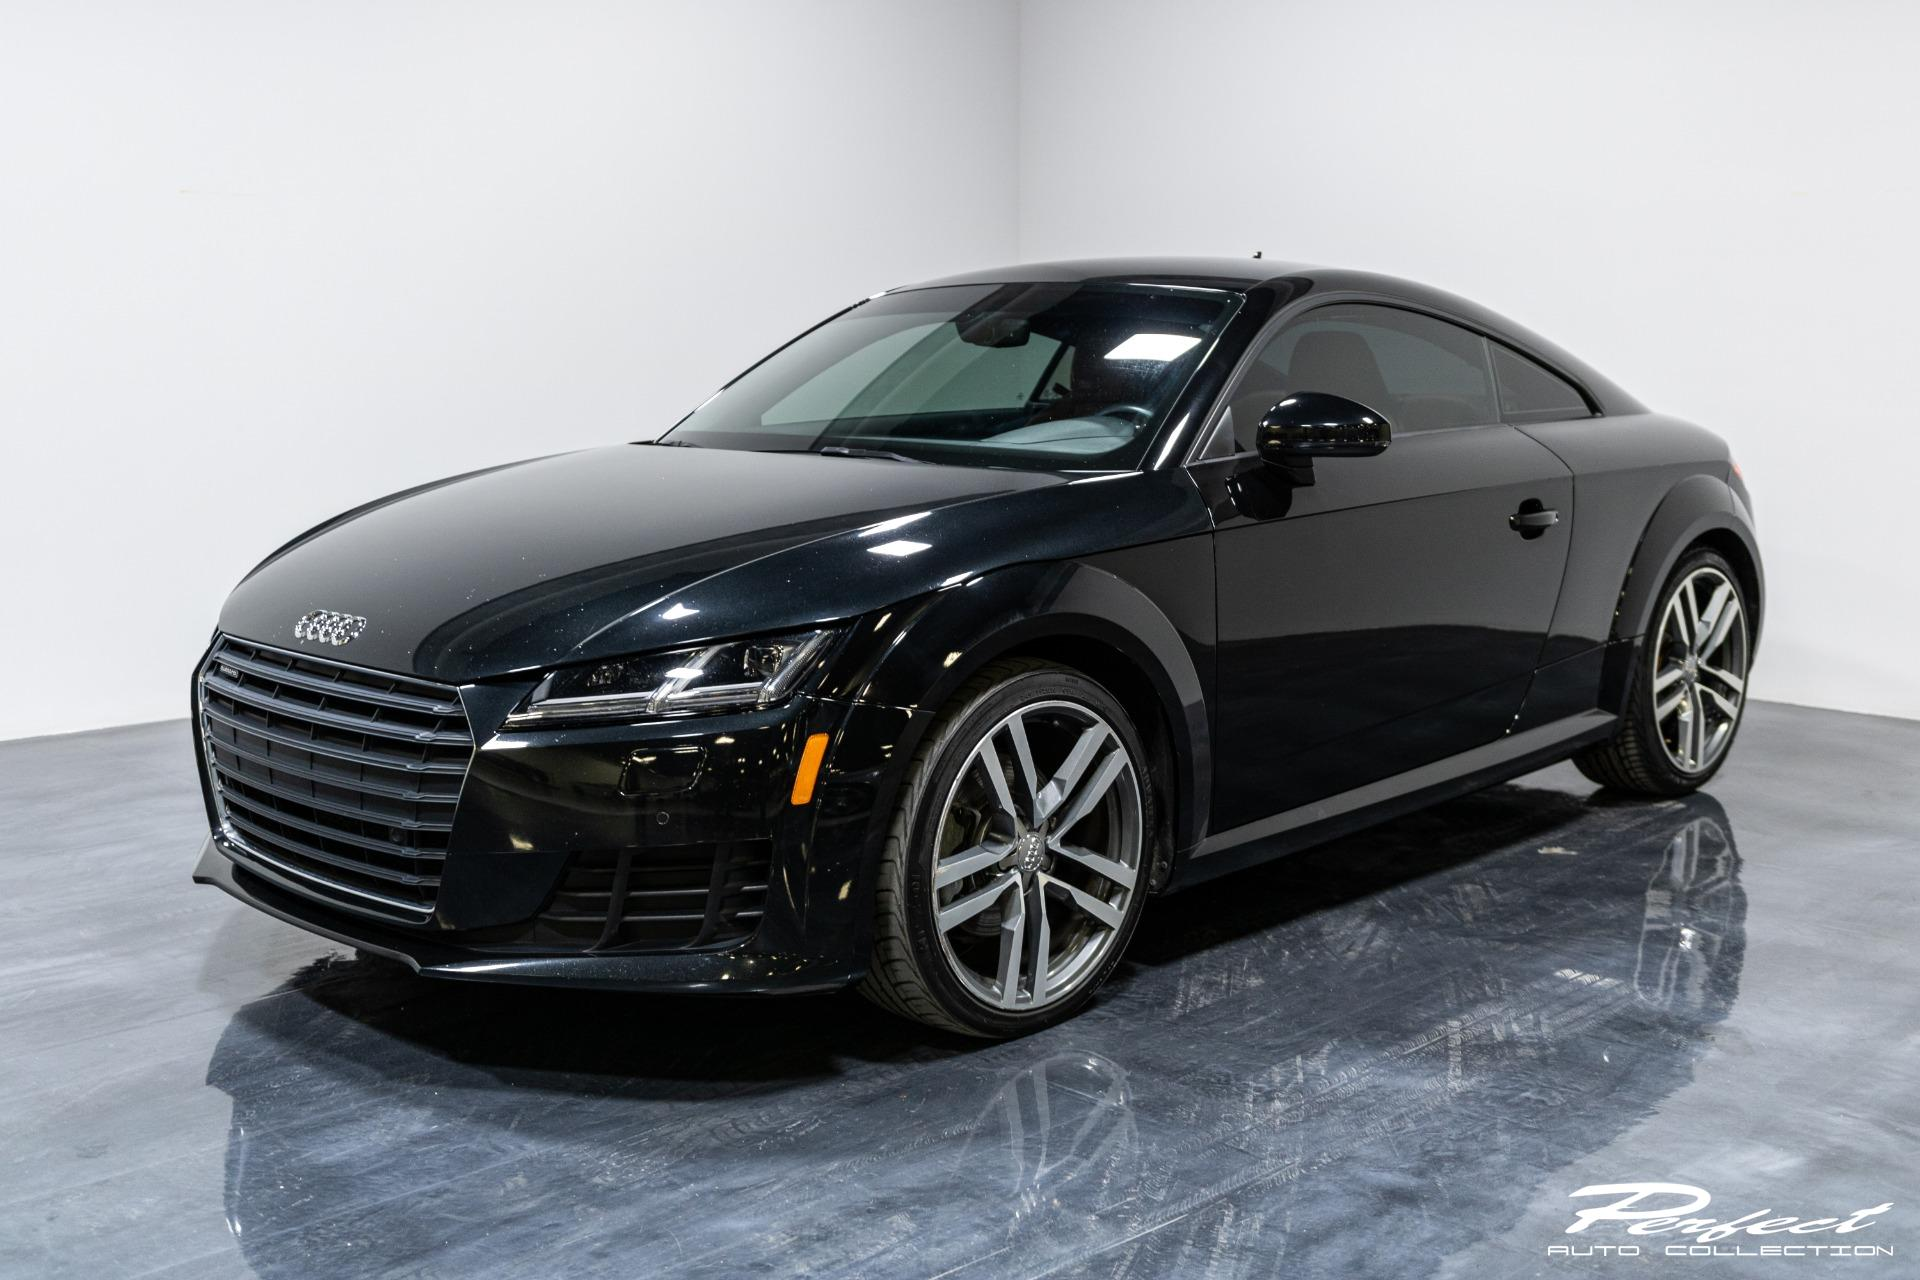 Used 2016 Audi TT 2.0T quattro for sale Sold at Perfect Auto Collection in Akron OH 44310 1